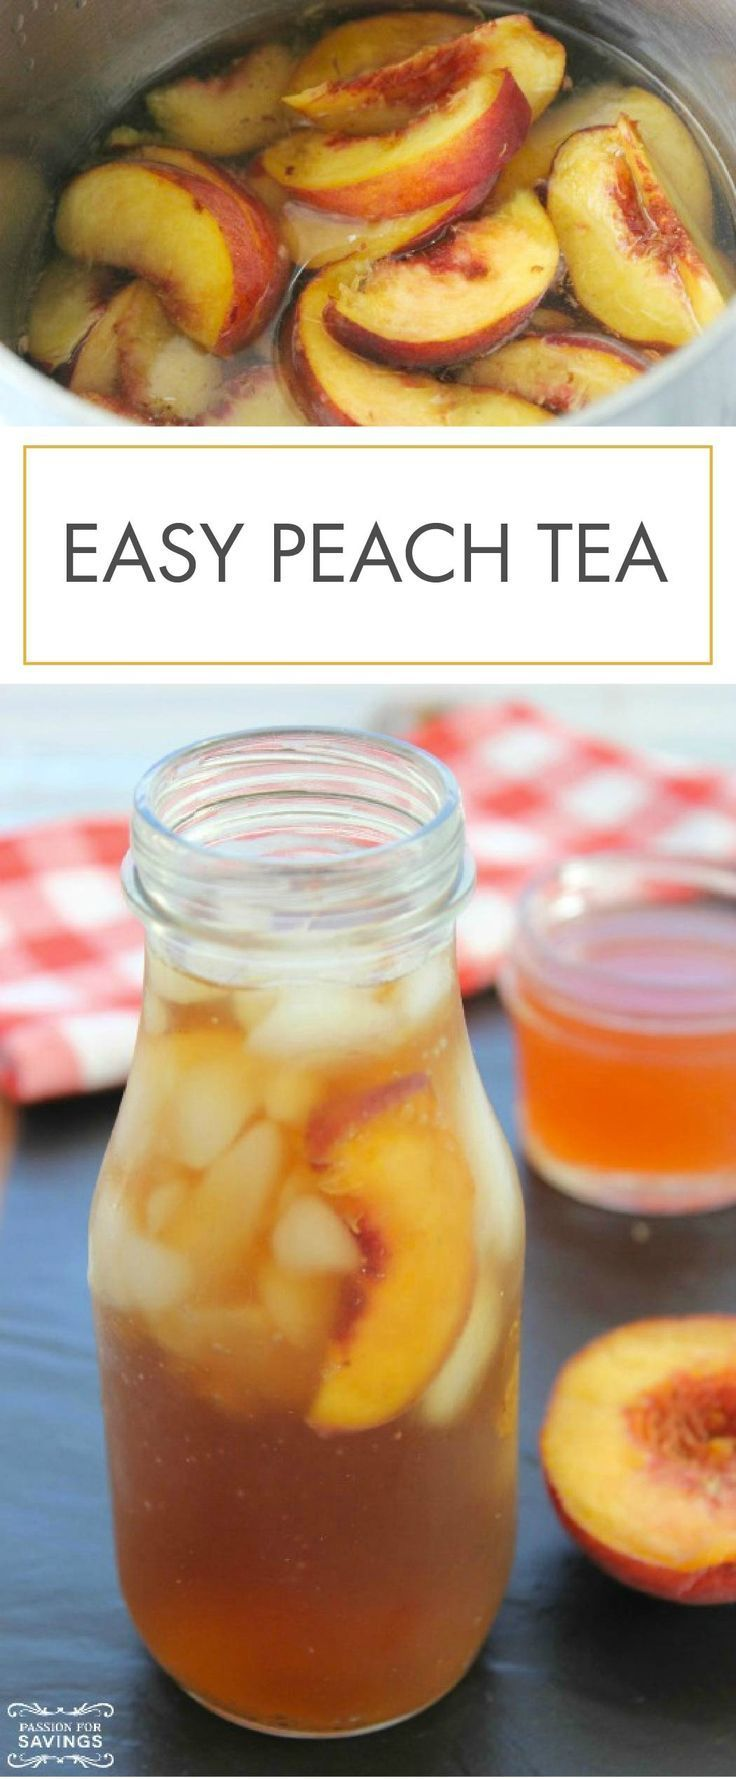 This Easy Peach Tea is the perfect drink recipe for grilling out on sunny days with friends! Its so refreshing, and you will love the chunks of fresh fruit. illdrinktothat